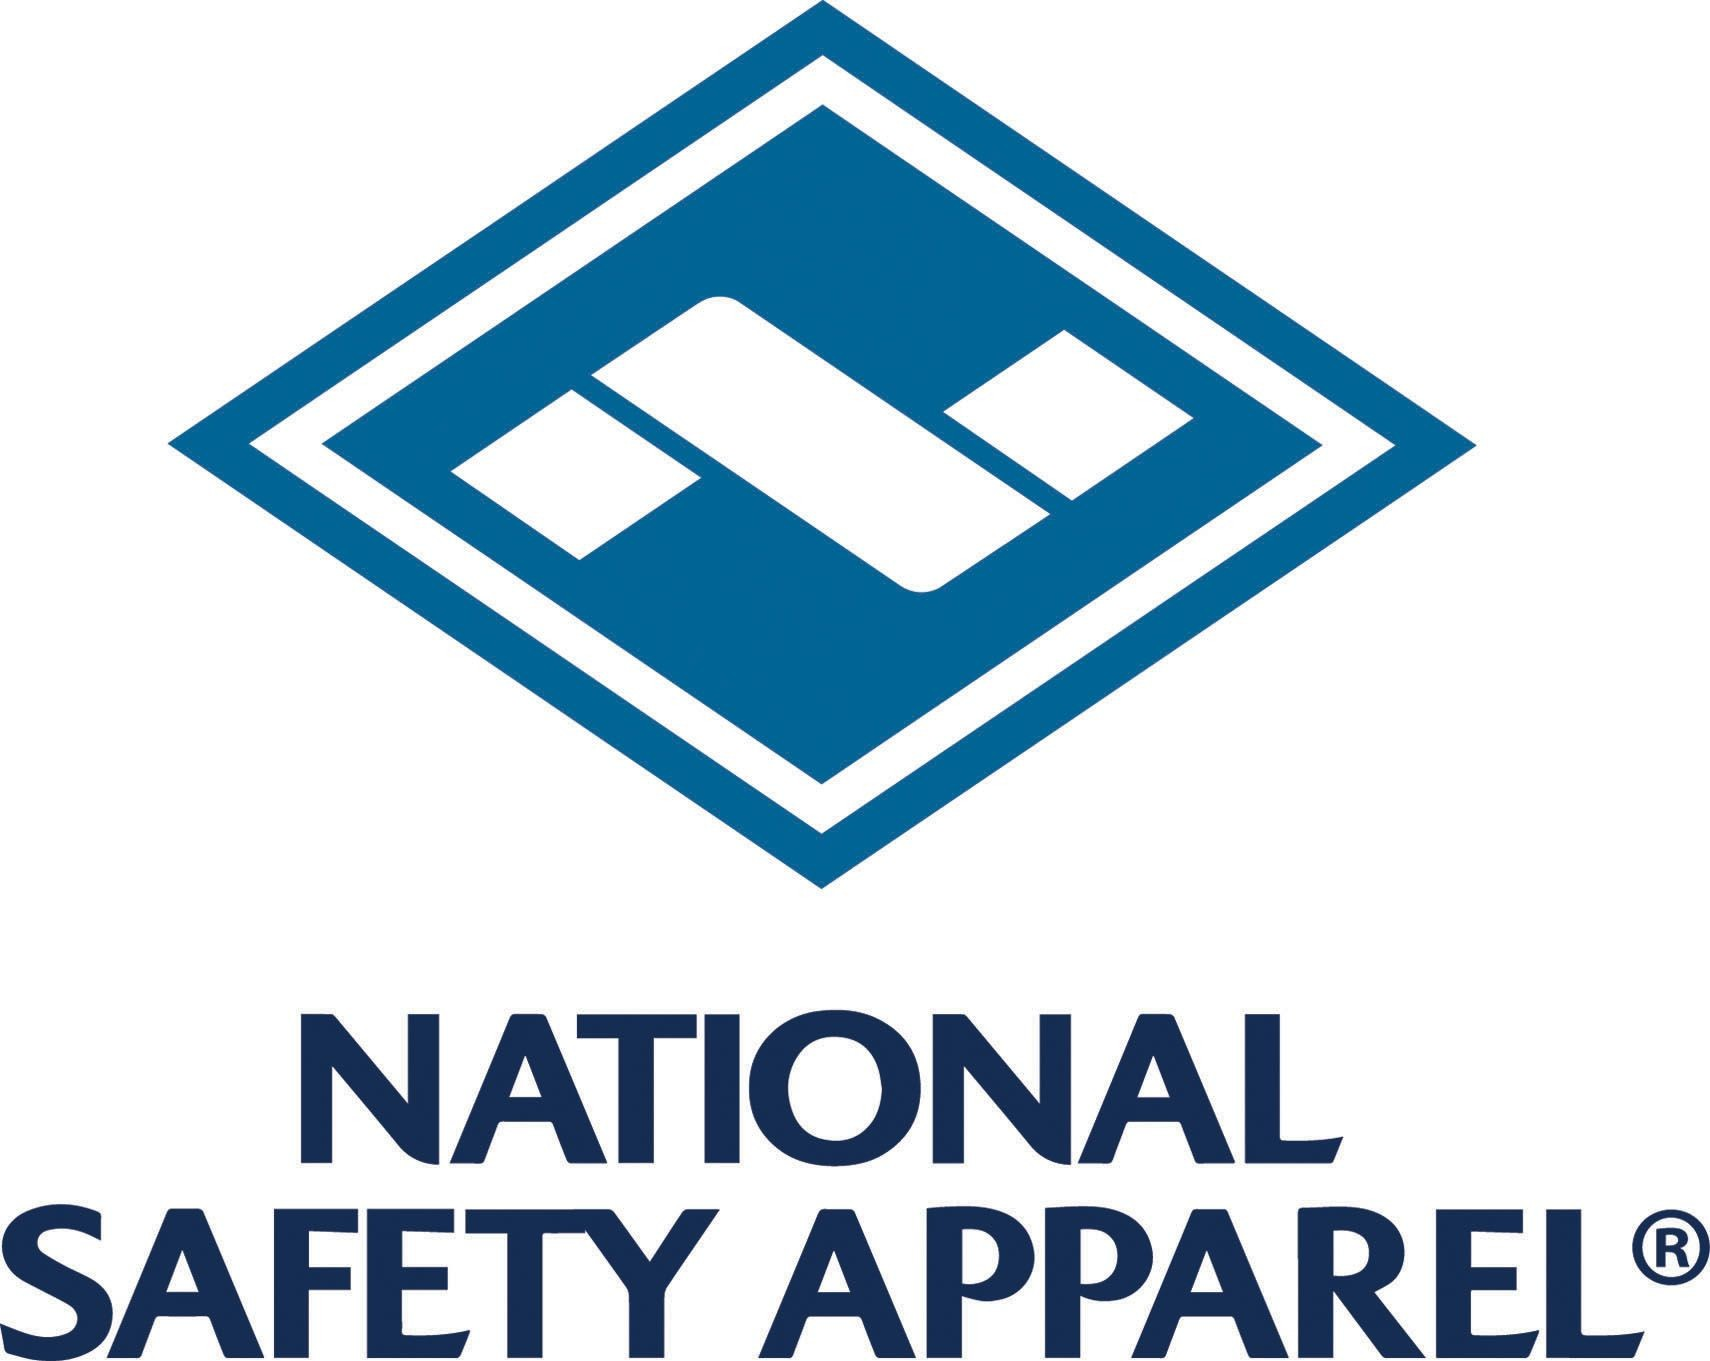 National Safety Apparel